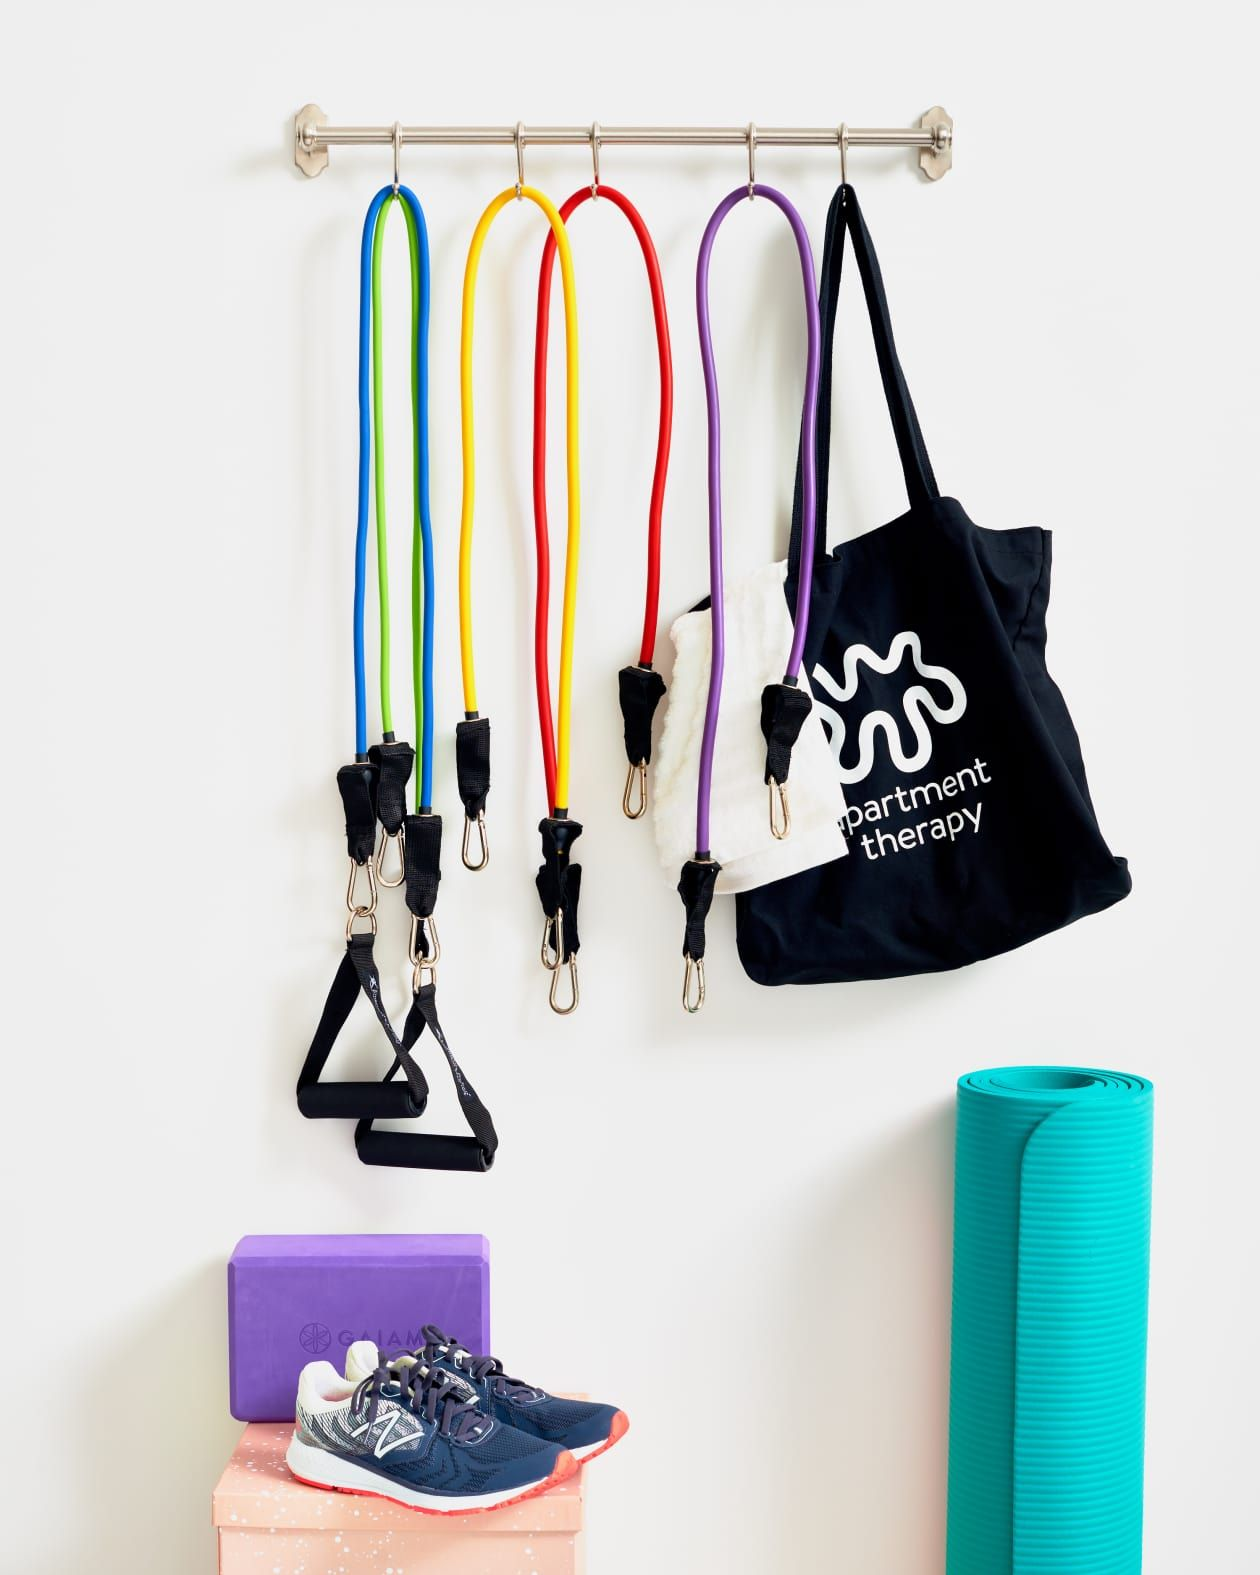 Home Gym Design Ideas Basement: 3 Brilliant Organizing Hacks For Working Out In Your Small